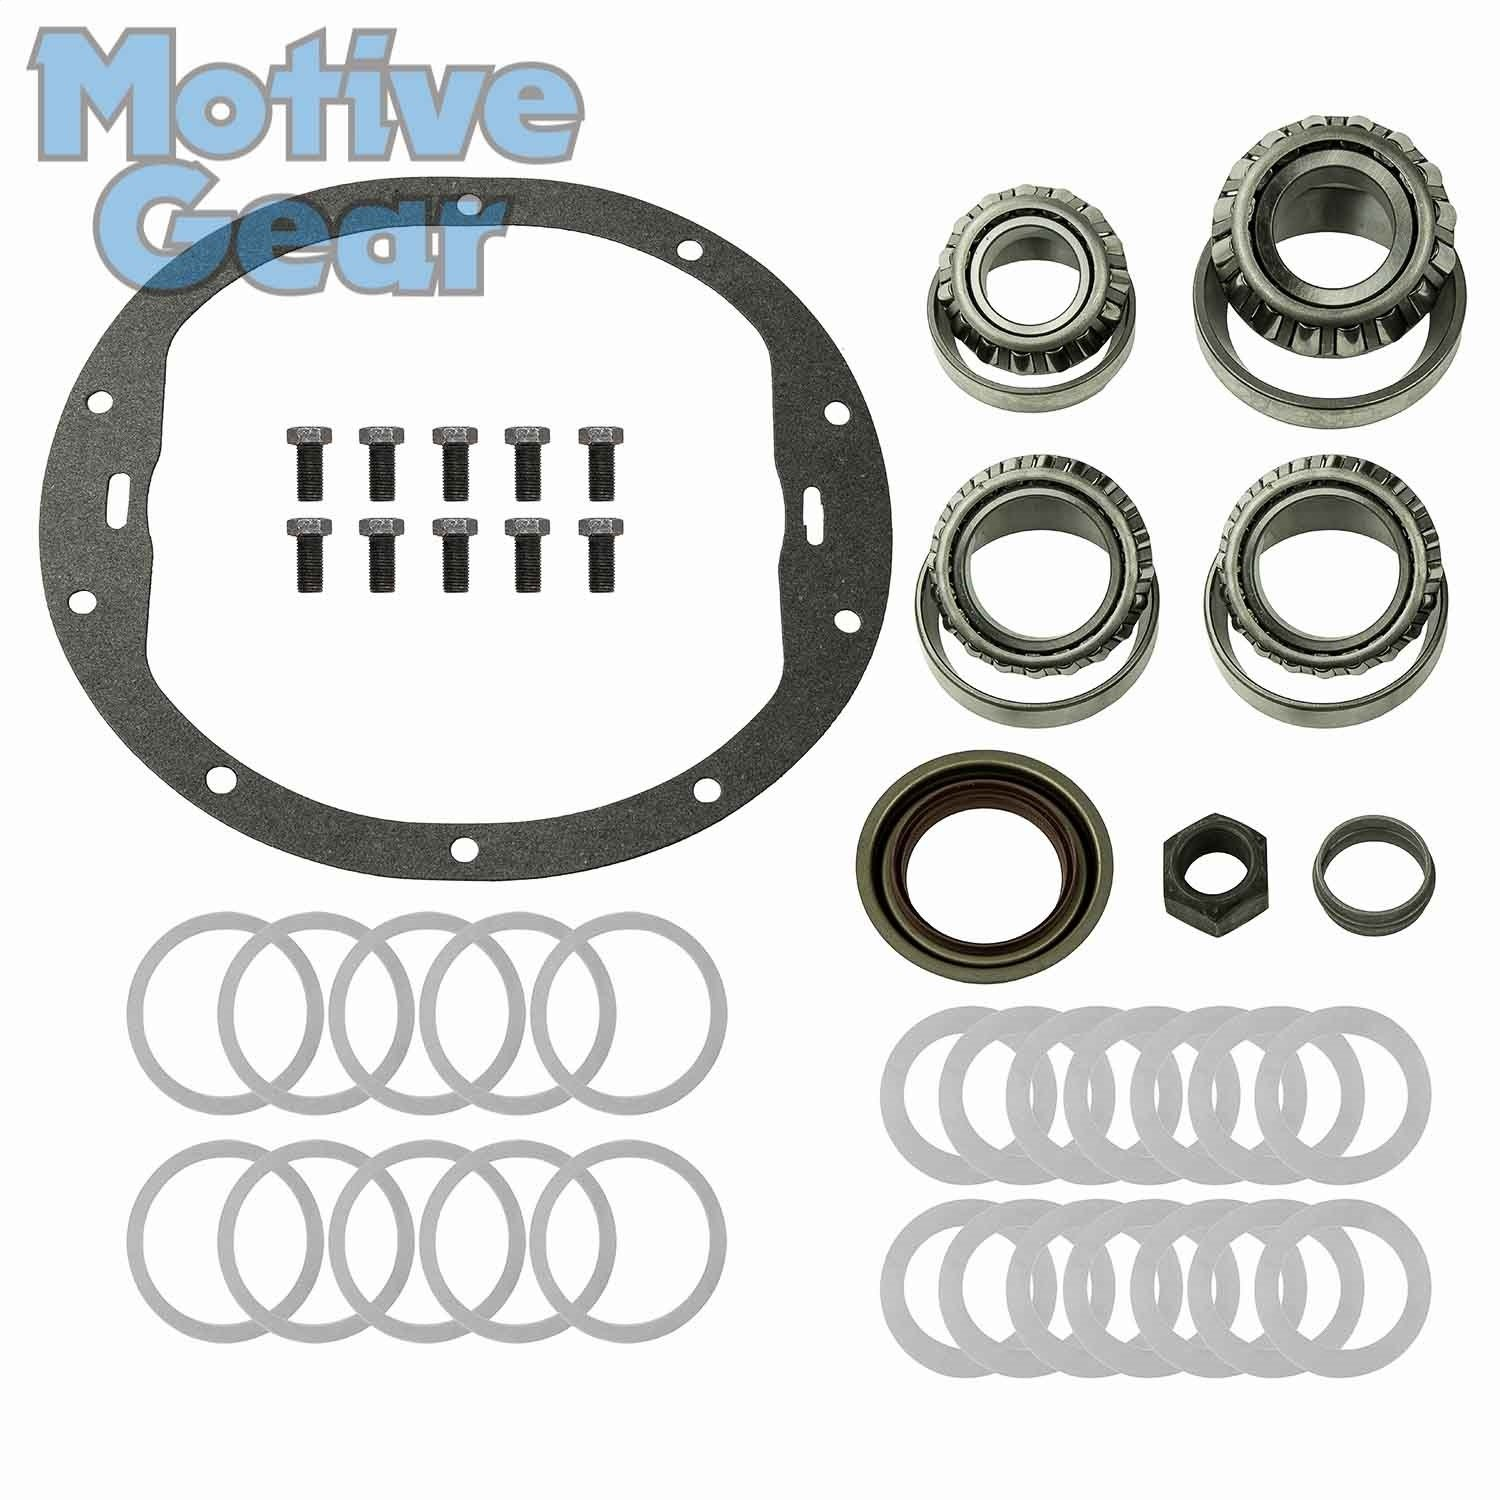 Motive Gear R10RLAMKT Bearing Kit with Timken Bearings GM 8.6 2009